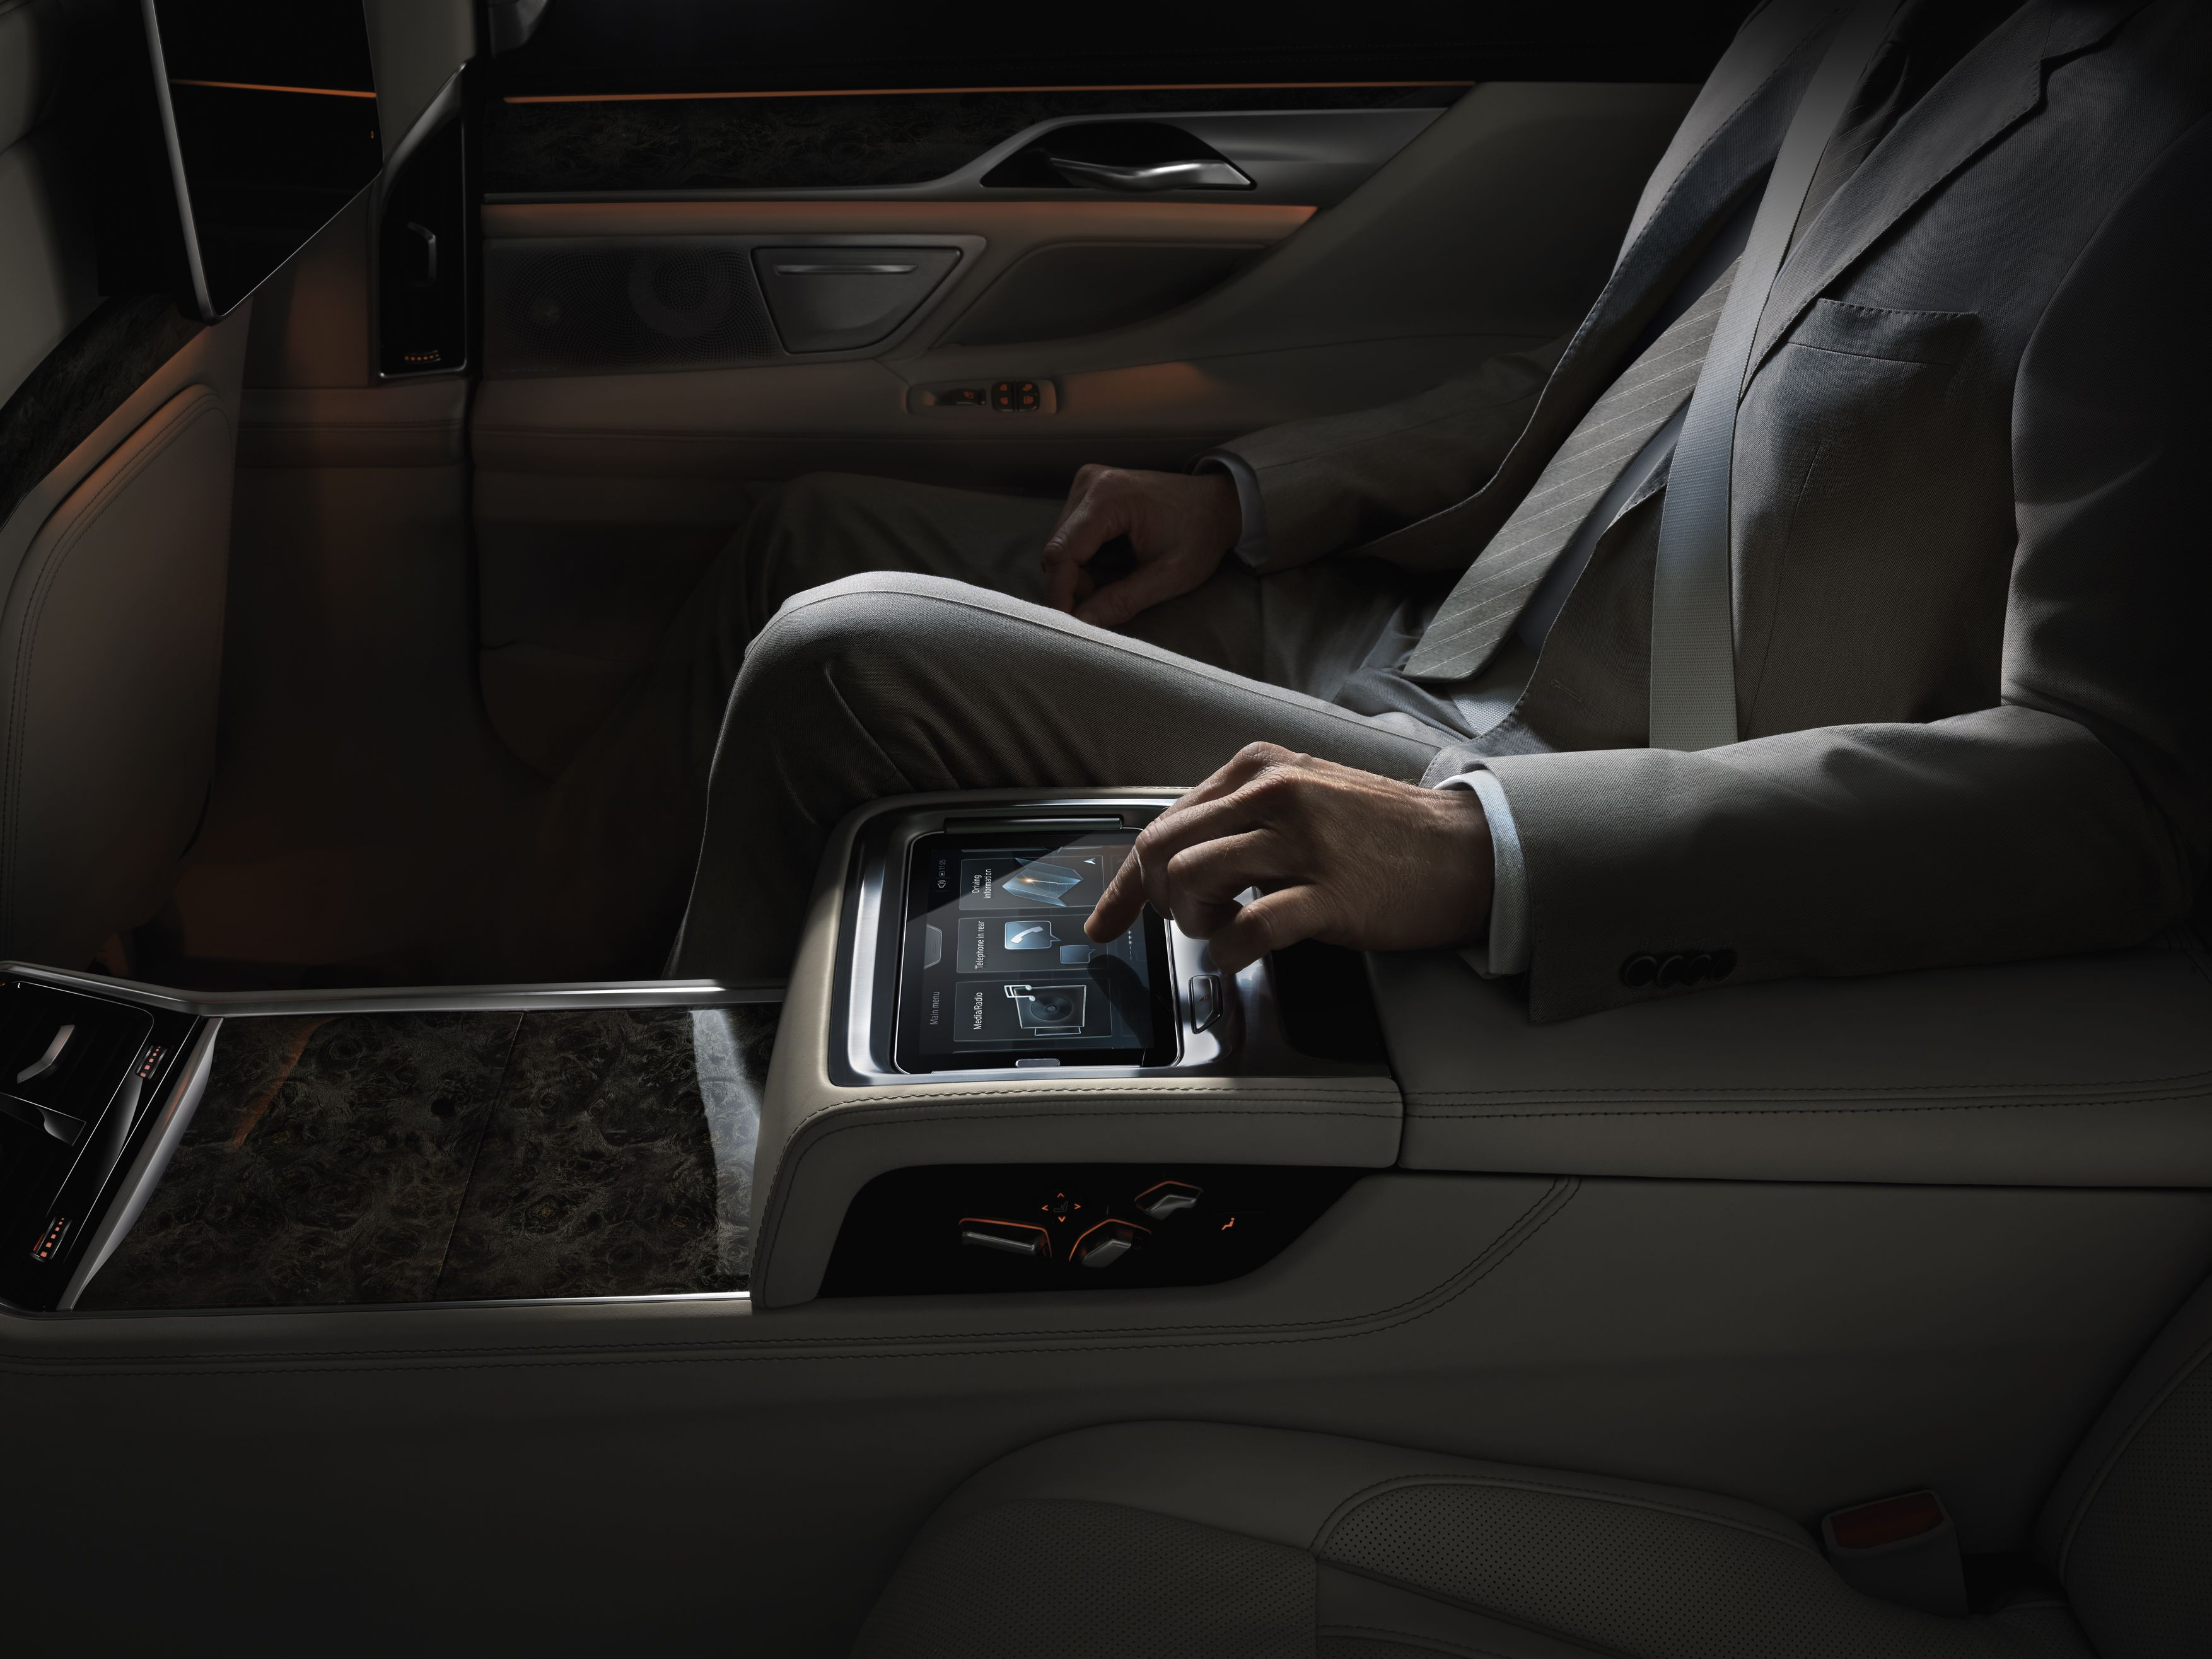 The 7 Series More Than Any Other BMW Is As Much About Passenger Experience It Drivers Especially Important In China A Key Market Where